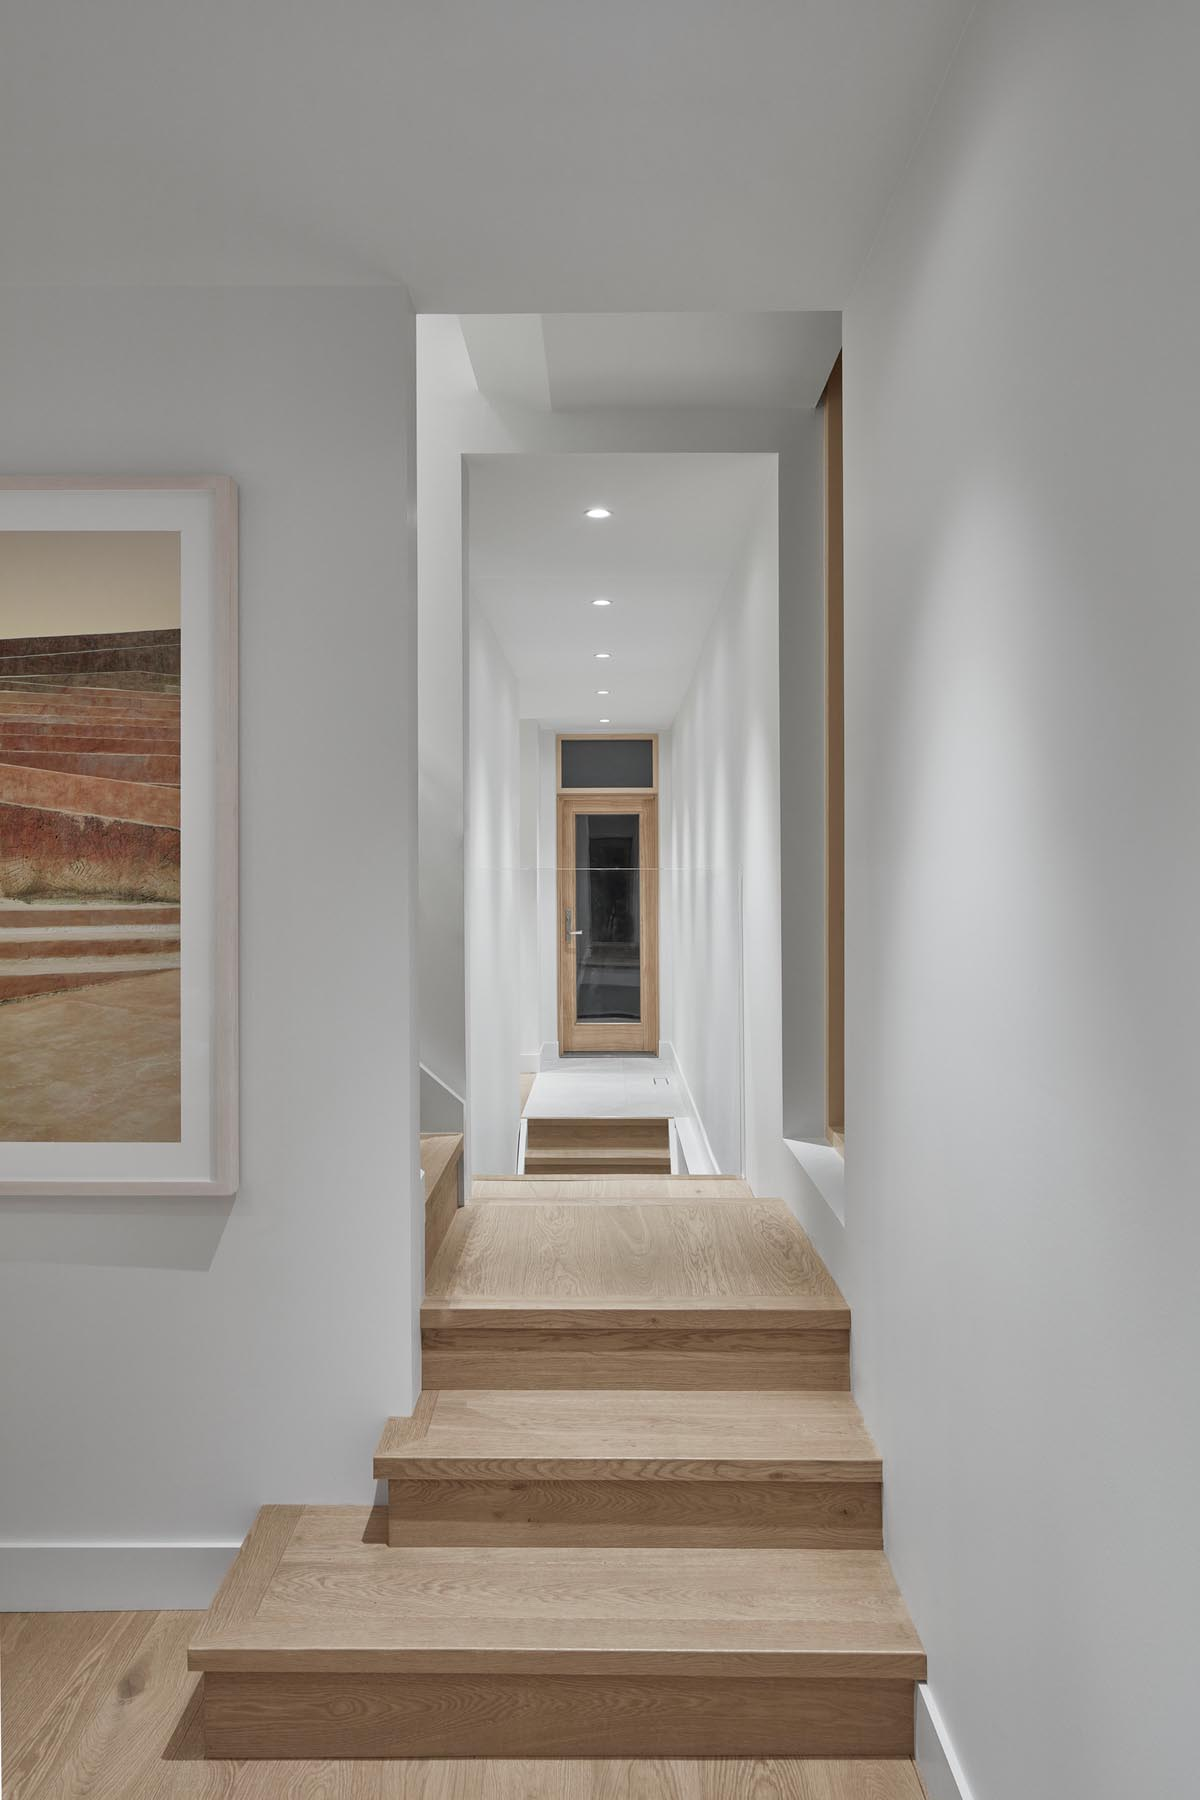 A modern hallway with wood floors, window frames, and doors.